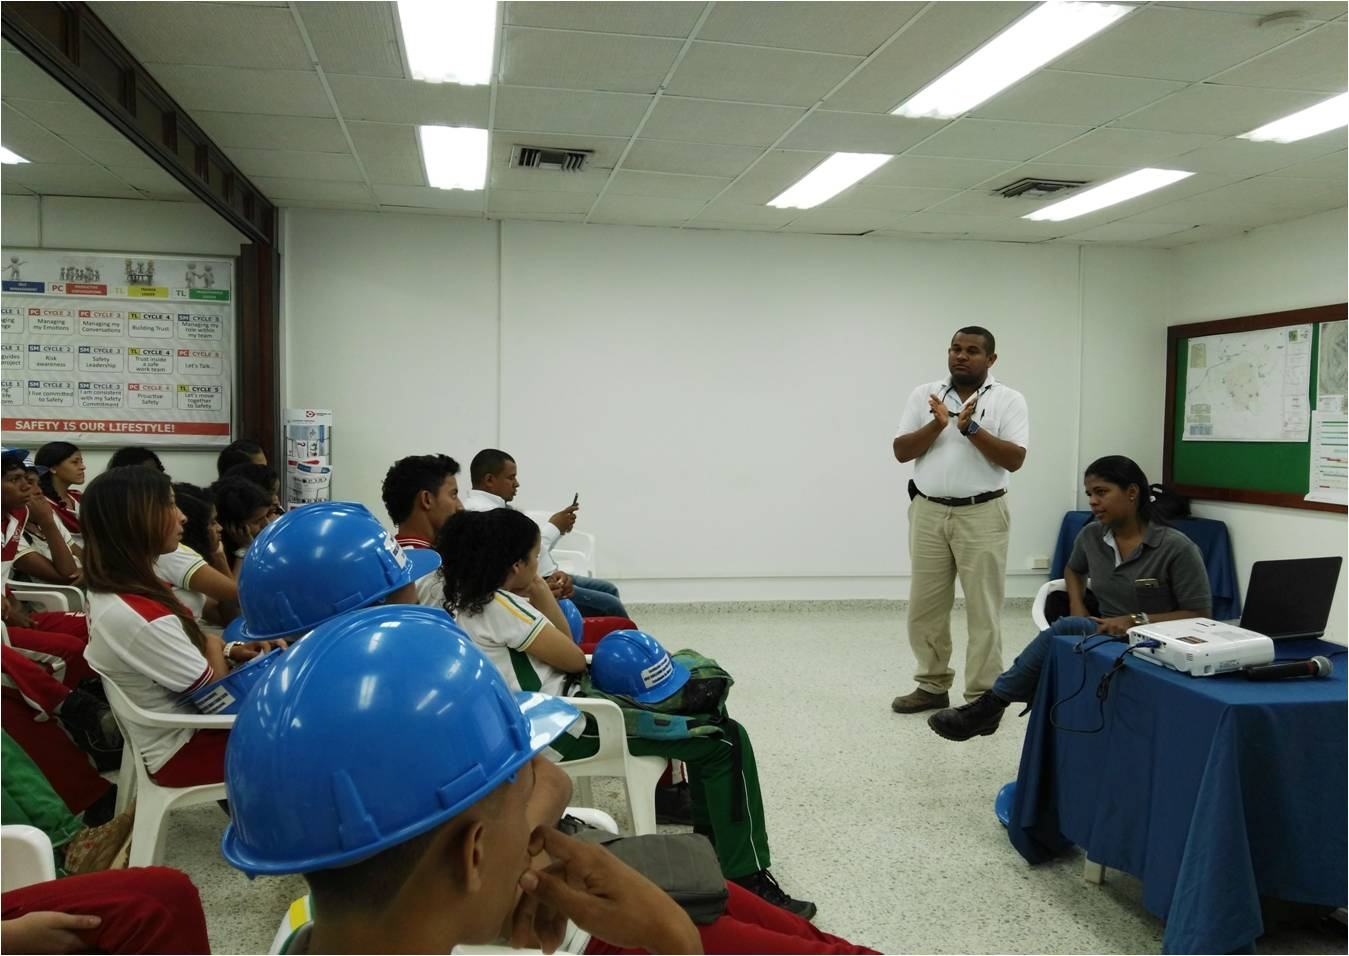 *An 11th grade student from the educational institution Jose Guillermo Castro Castro from La Jagua de Ibirico, during the socialization of environmental issues